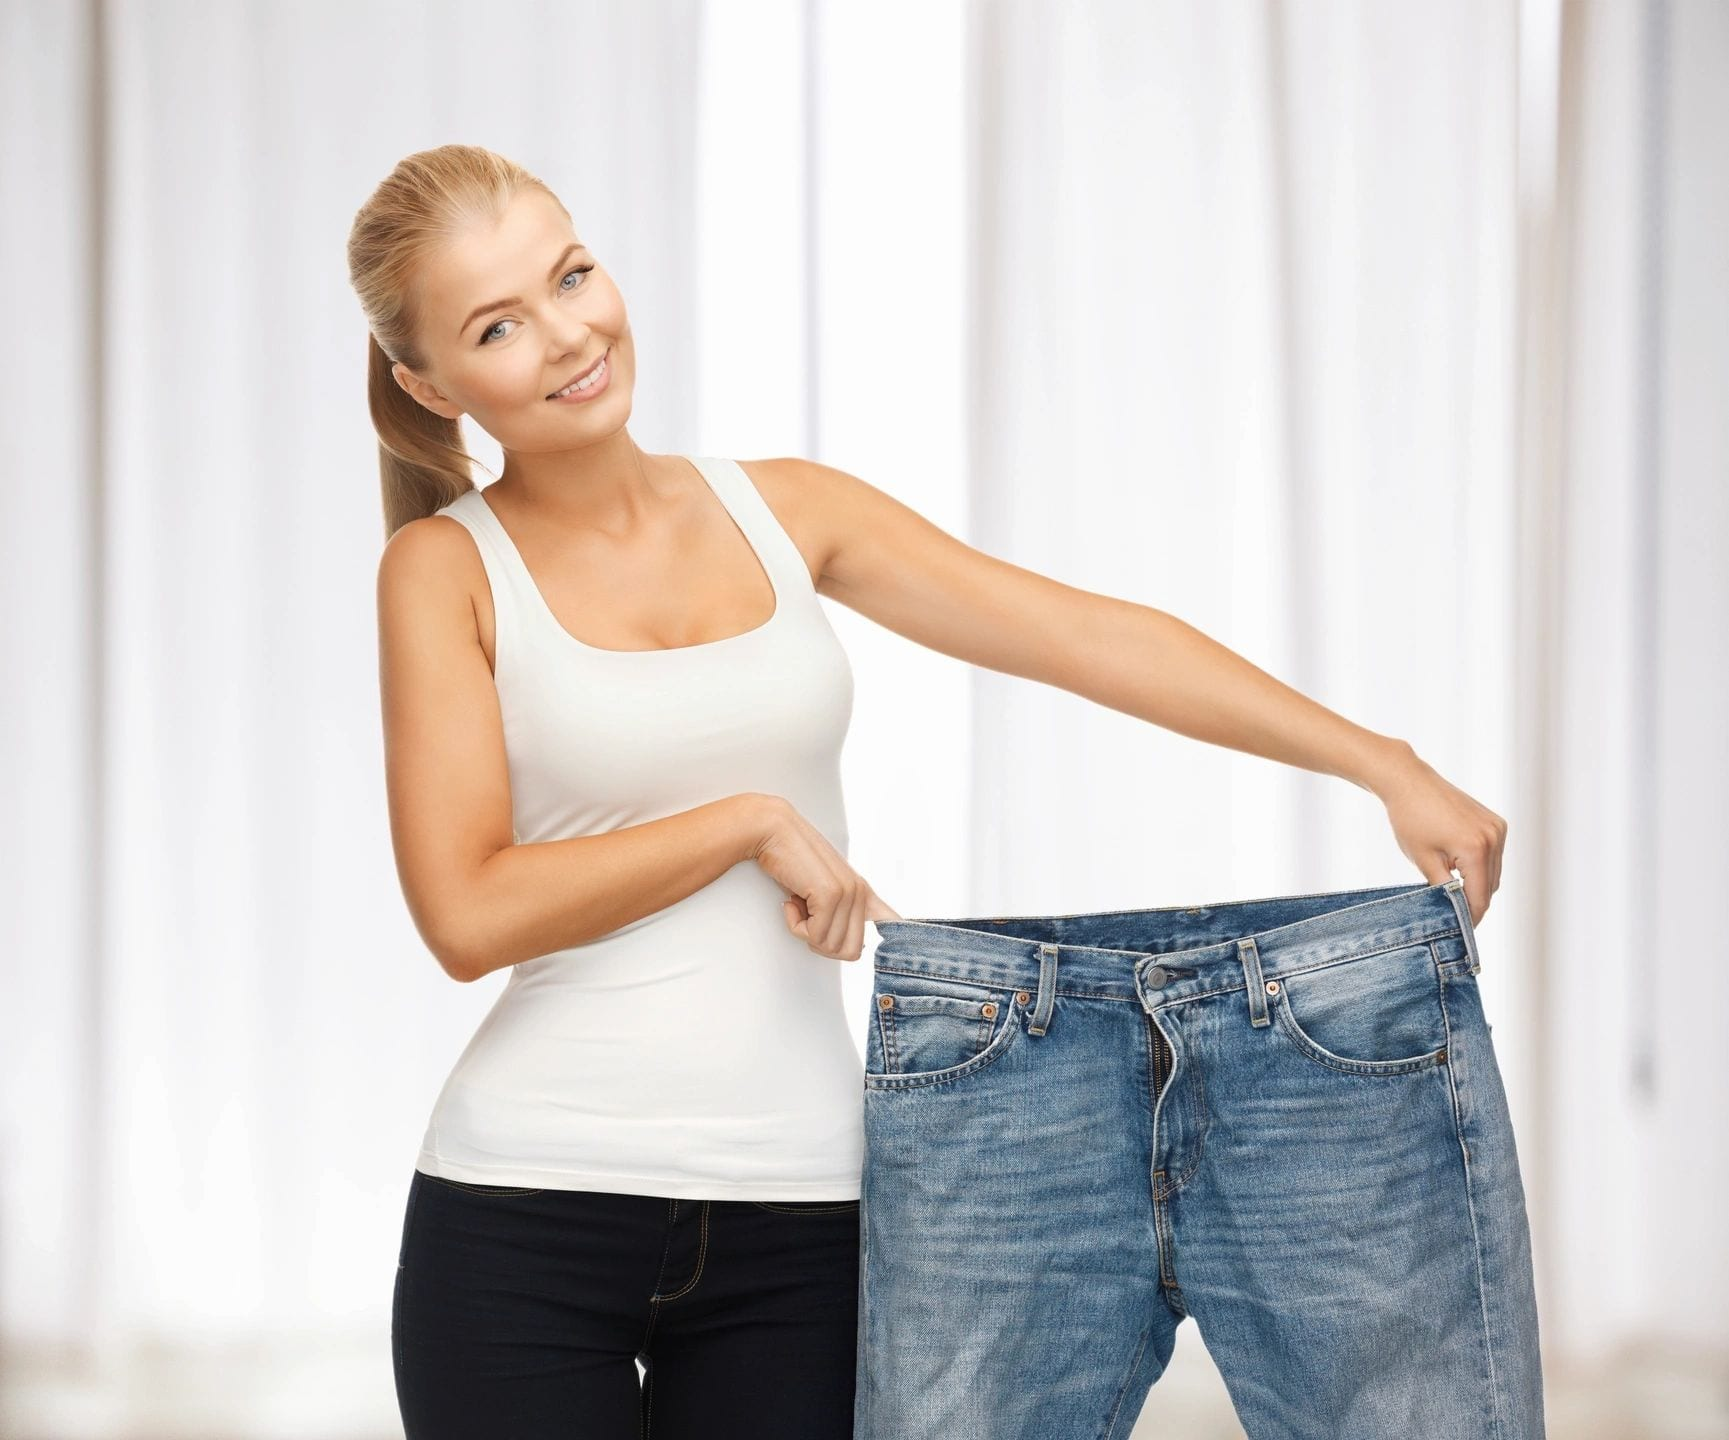 Bariatric Surgery Abroad: What Are Your Options?